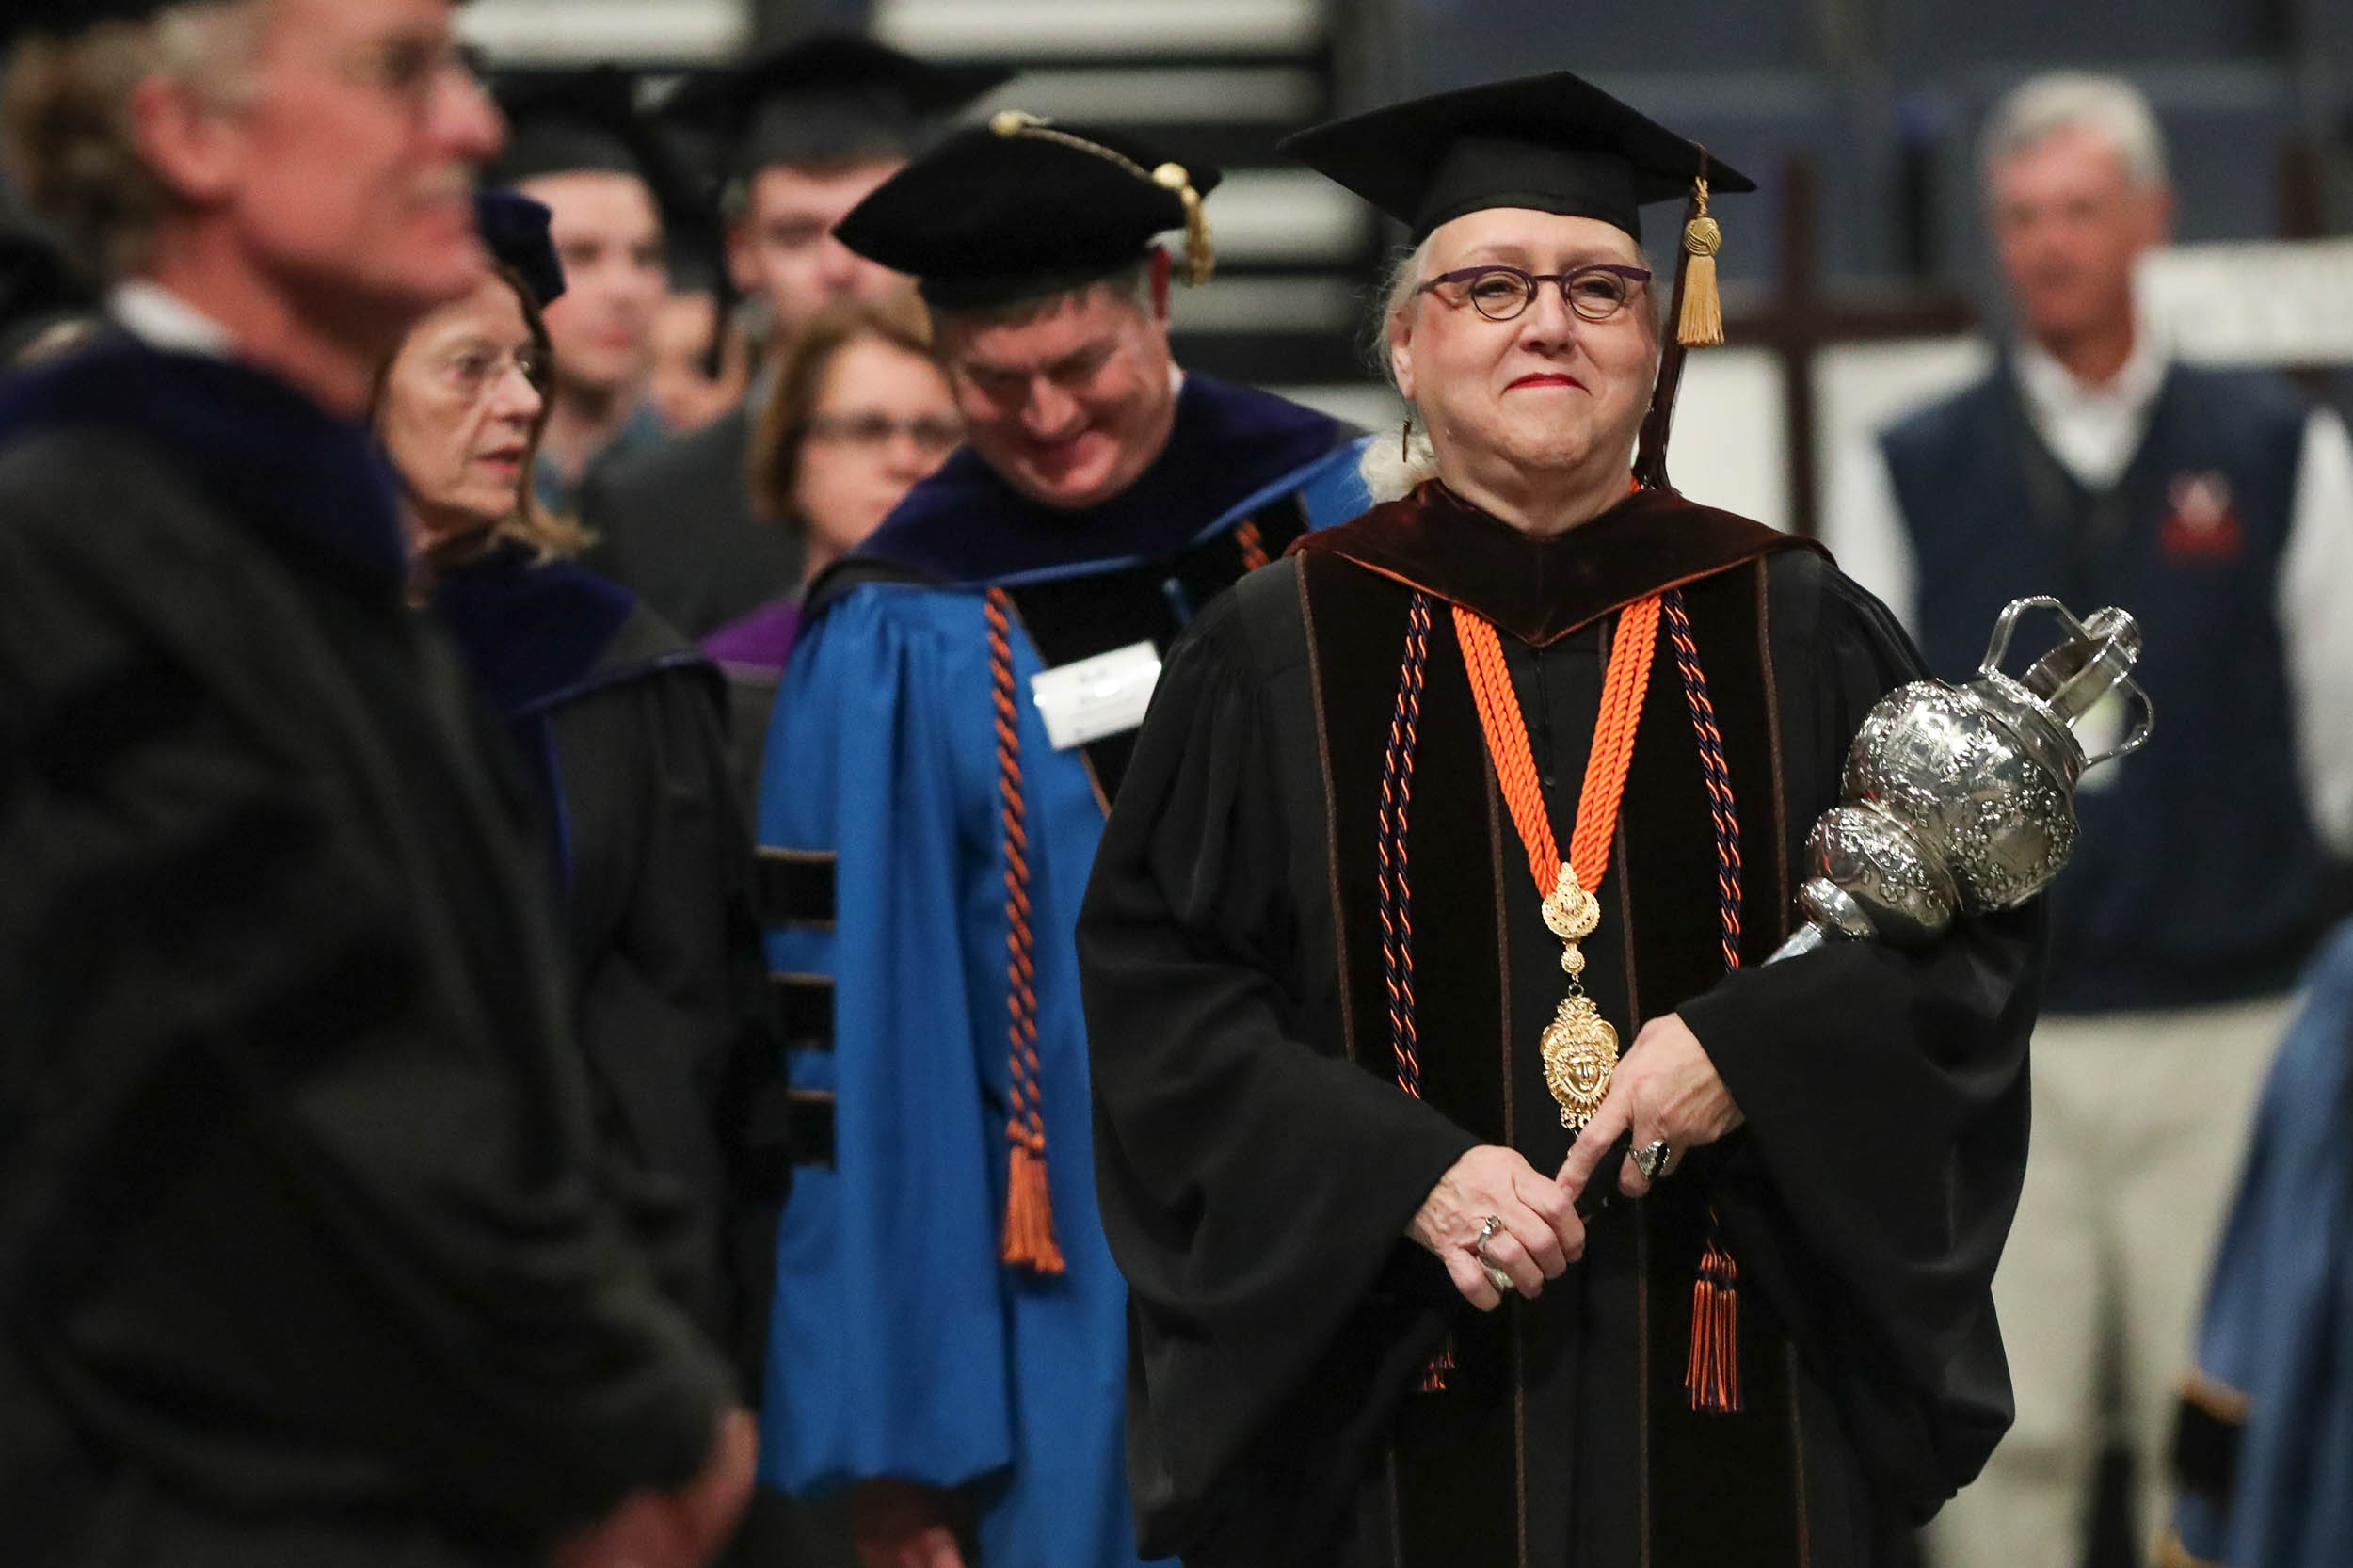 Gweneth West, a drama professor, leads the academic procession at Friday's Fall Convocation.